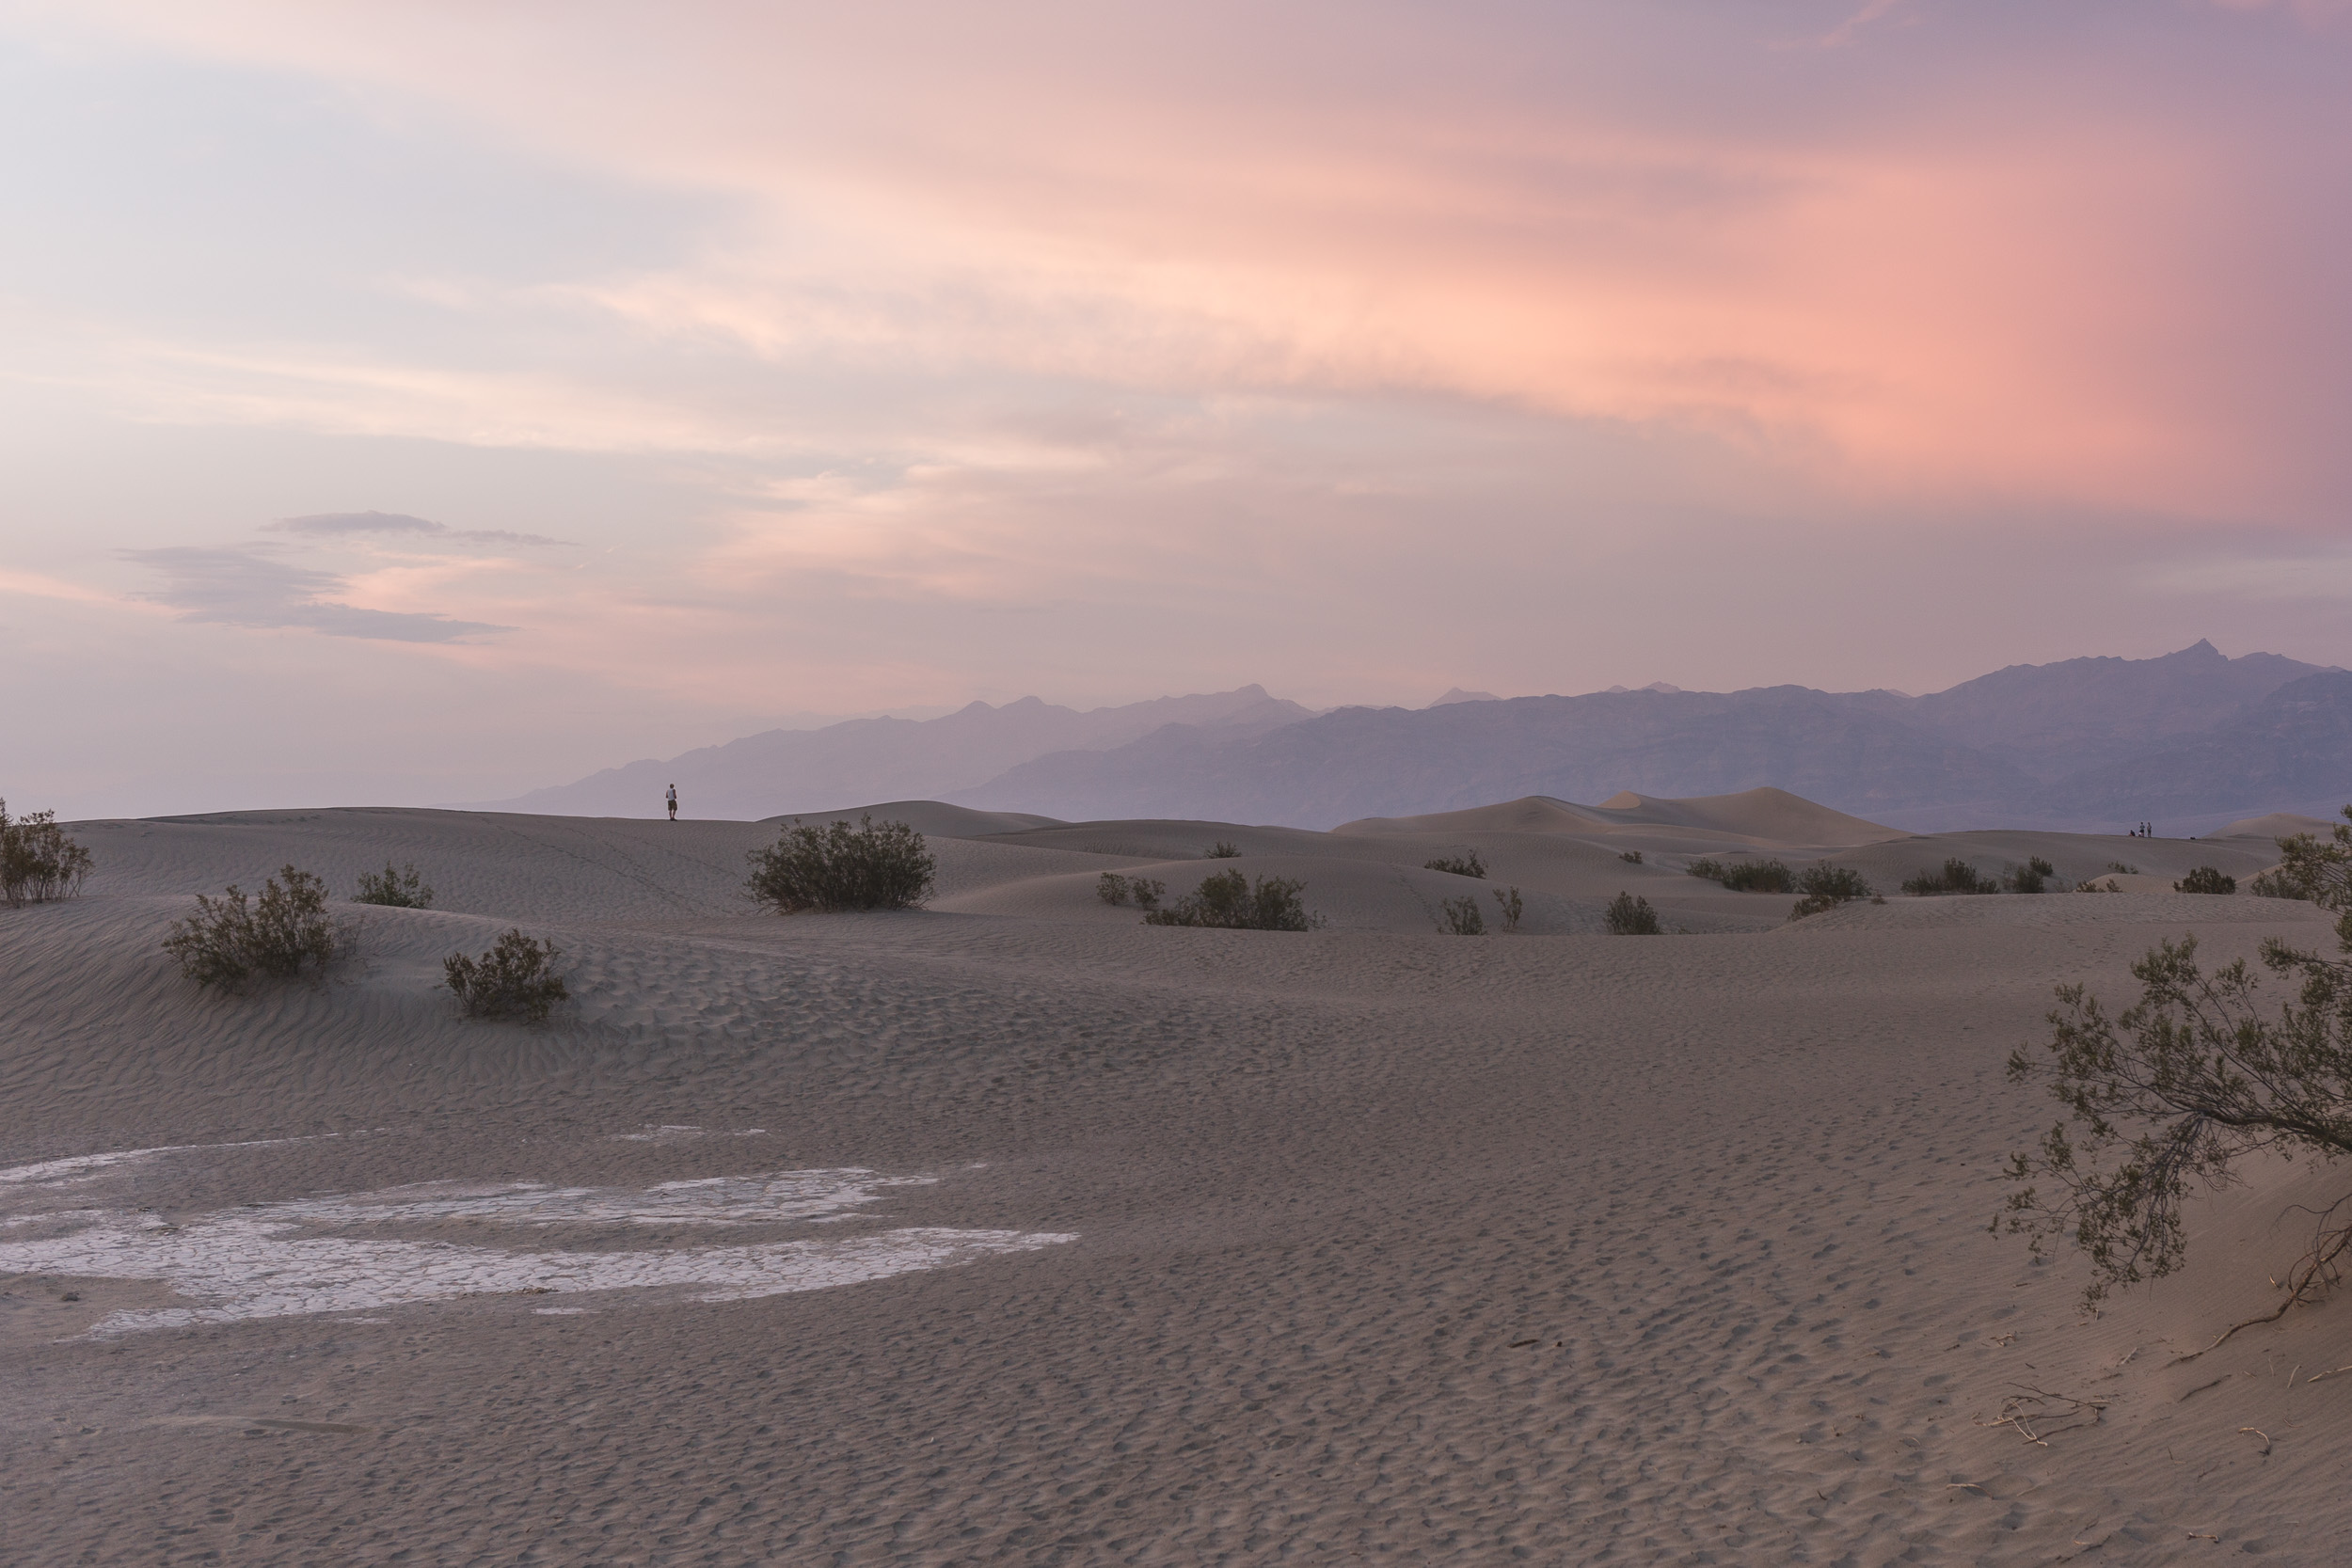 20160822_20160823_DEATH_VALLEY_NATIONAL_PARK-10.2.jpg